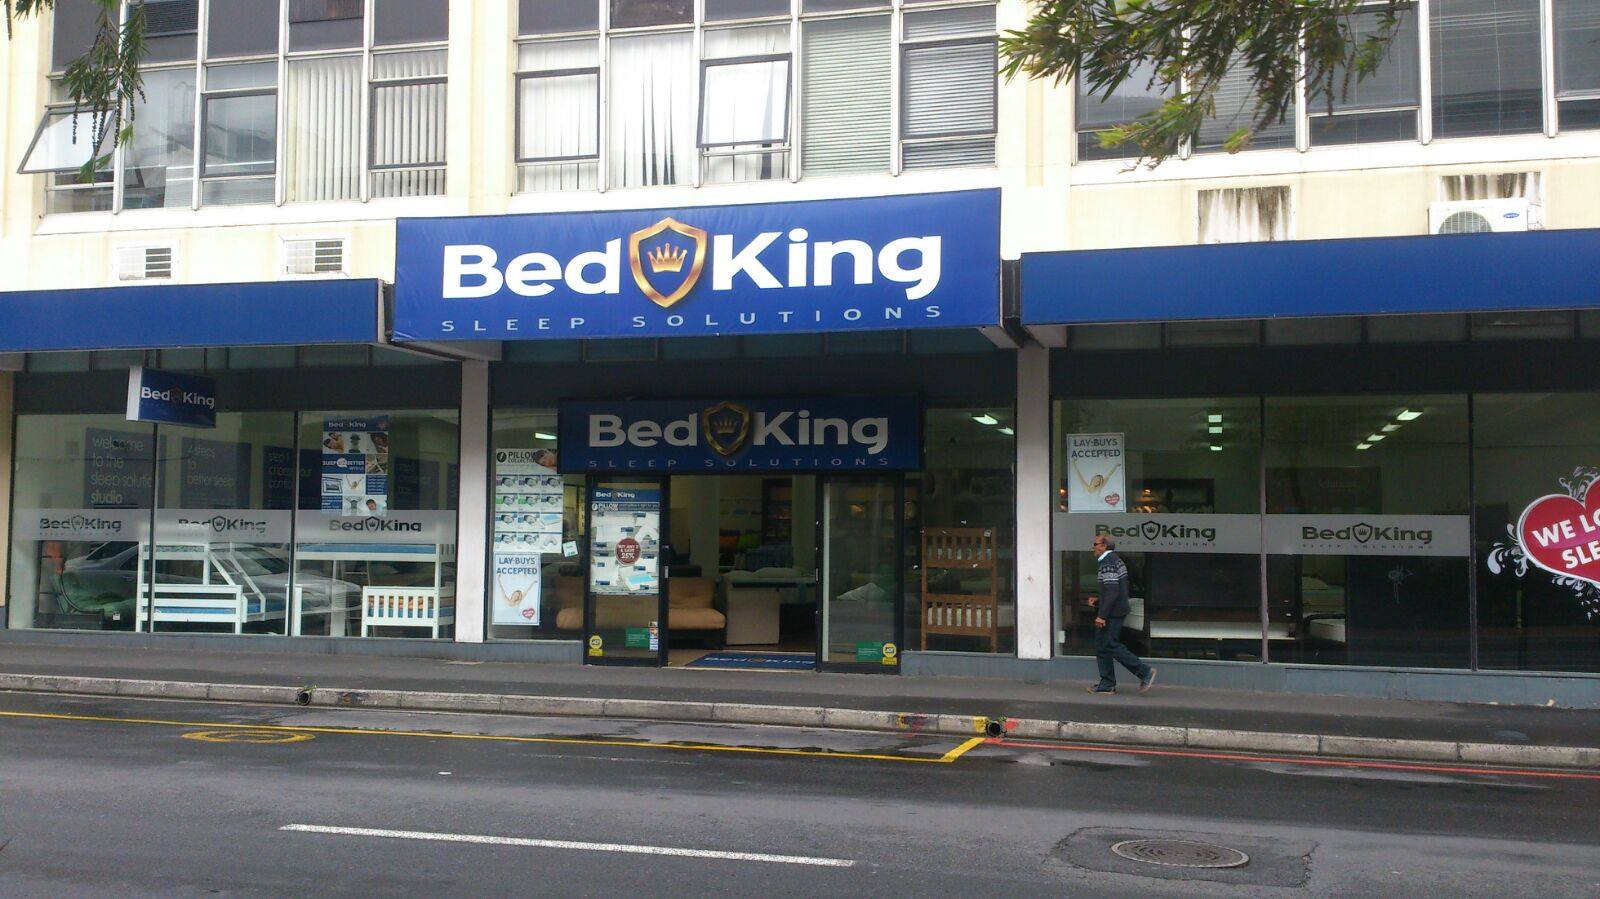 The Bed King Store in Claremont